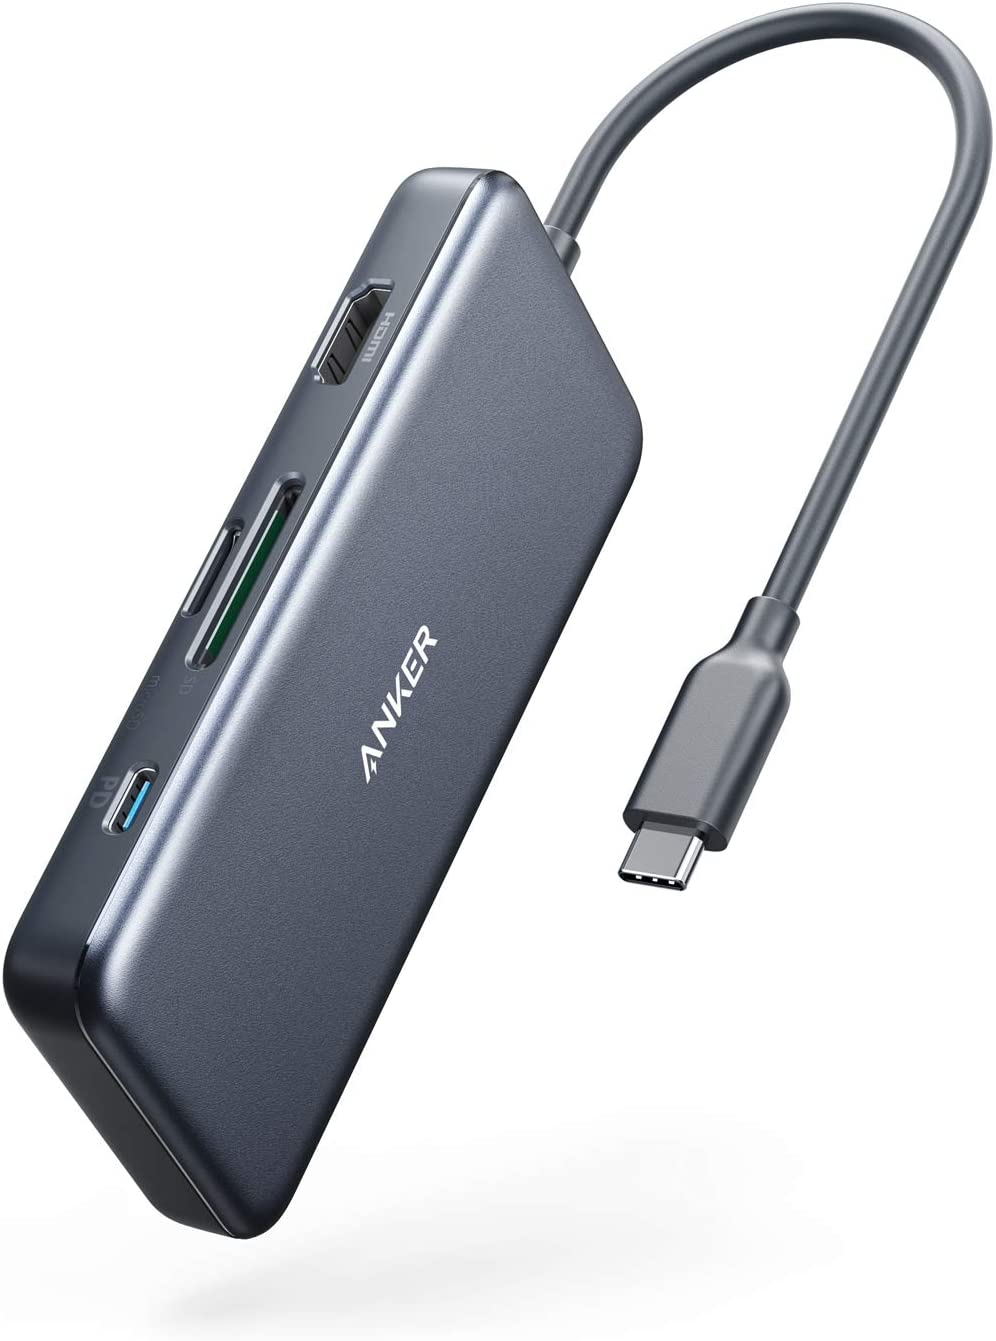 USB C Hub, 7-in-1 USB C Adapter